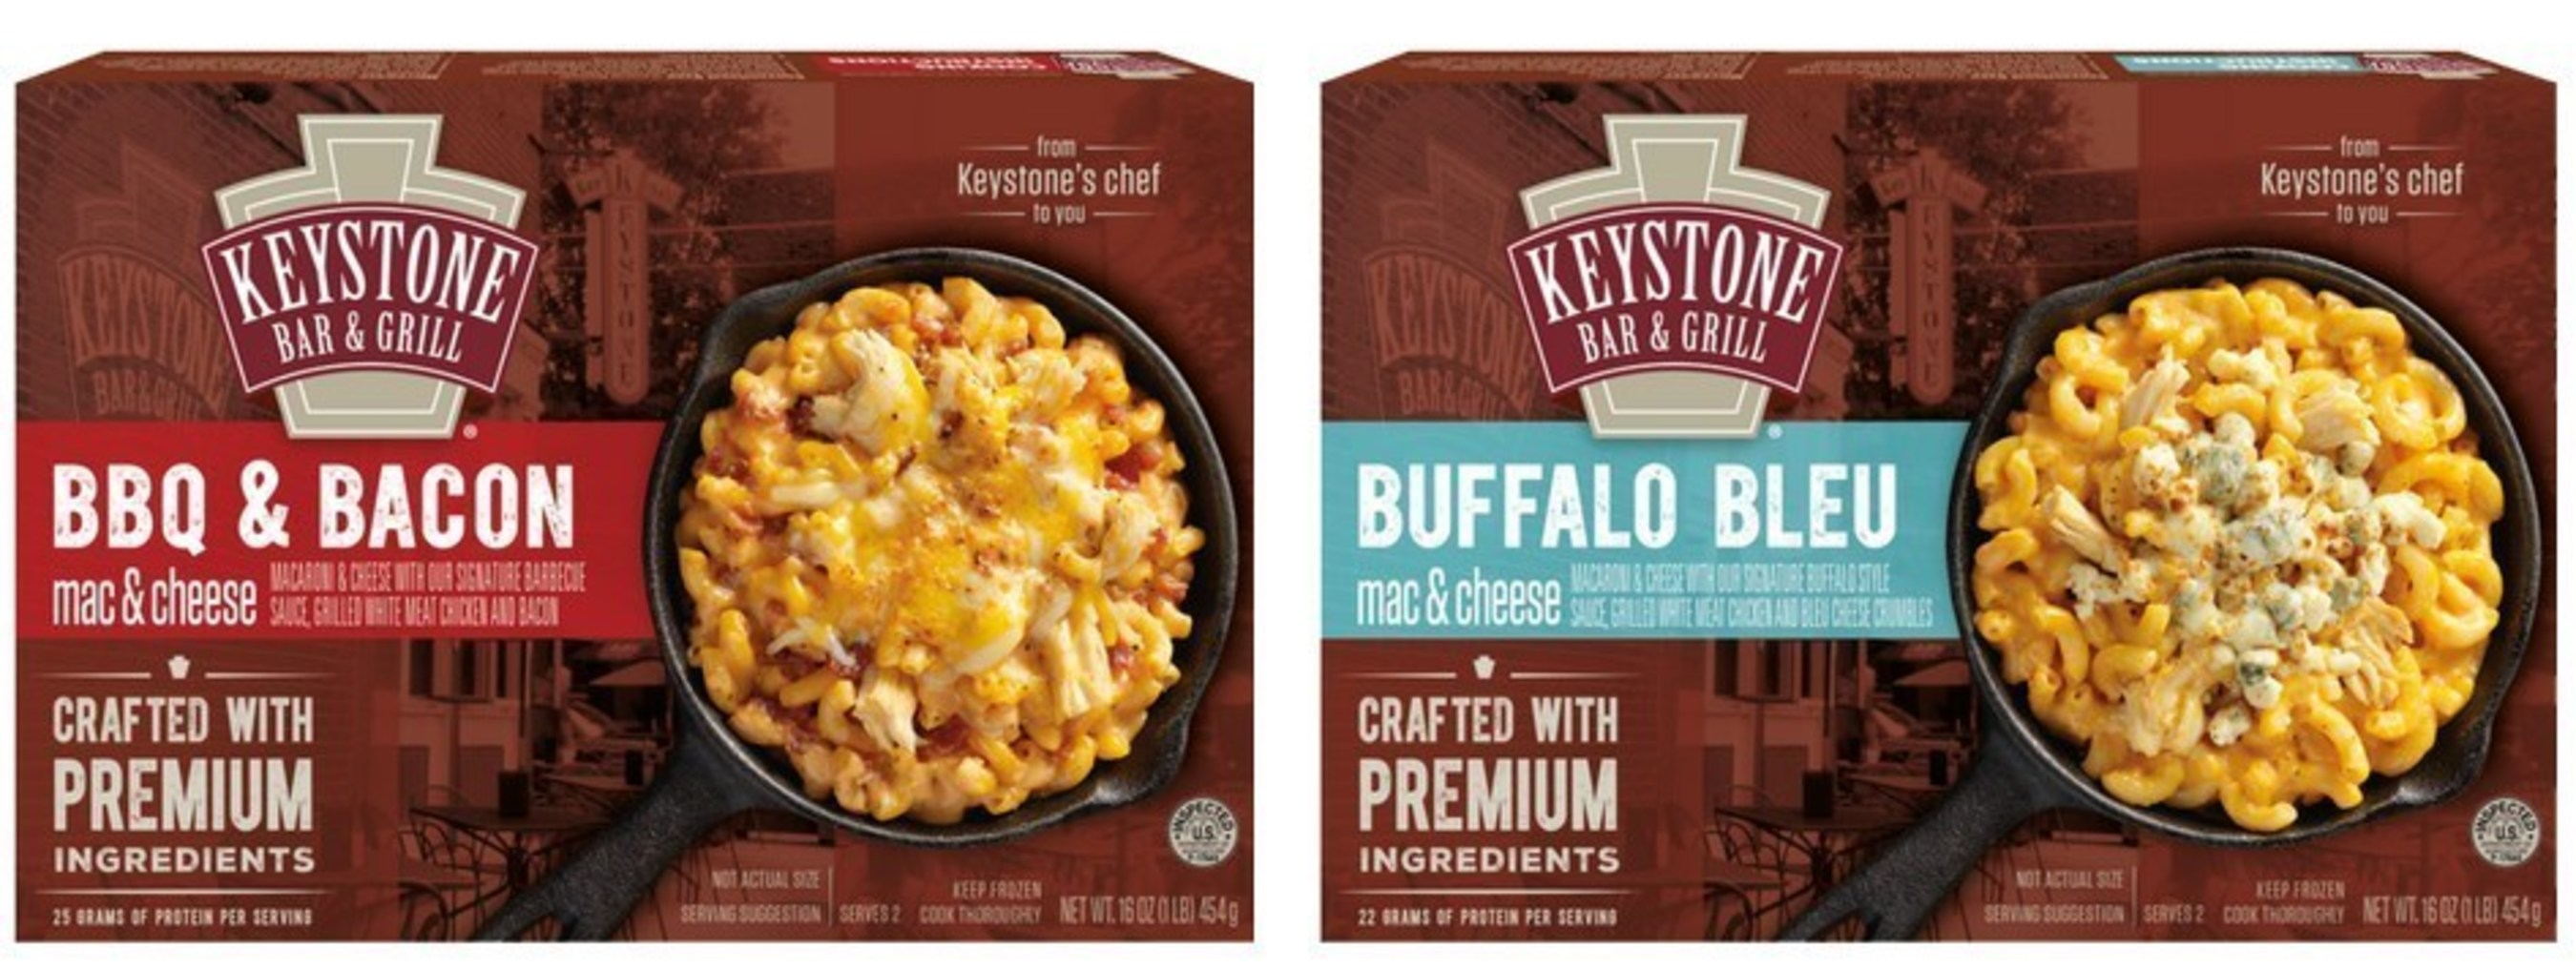 Keystone Bar & Grill's BBQ & Bacon and Buffalo Bleu frozen mac & cheeses now available at Kroger stores in the Midwest.